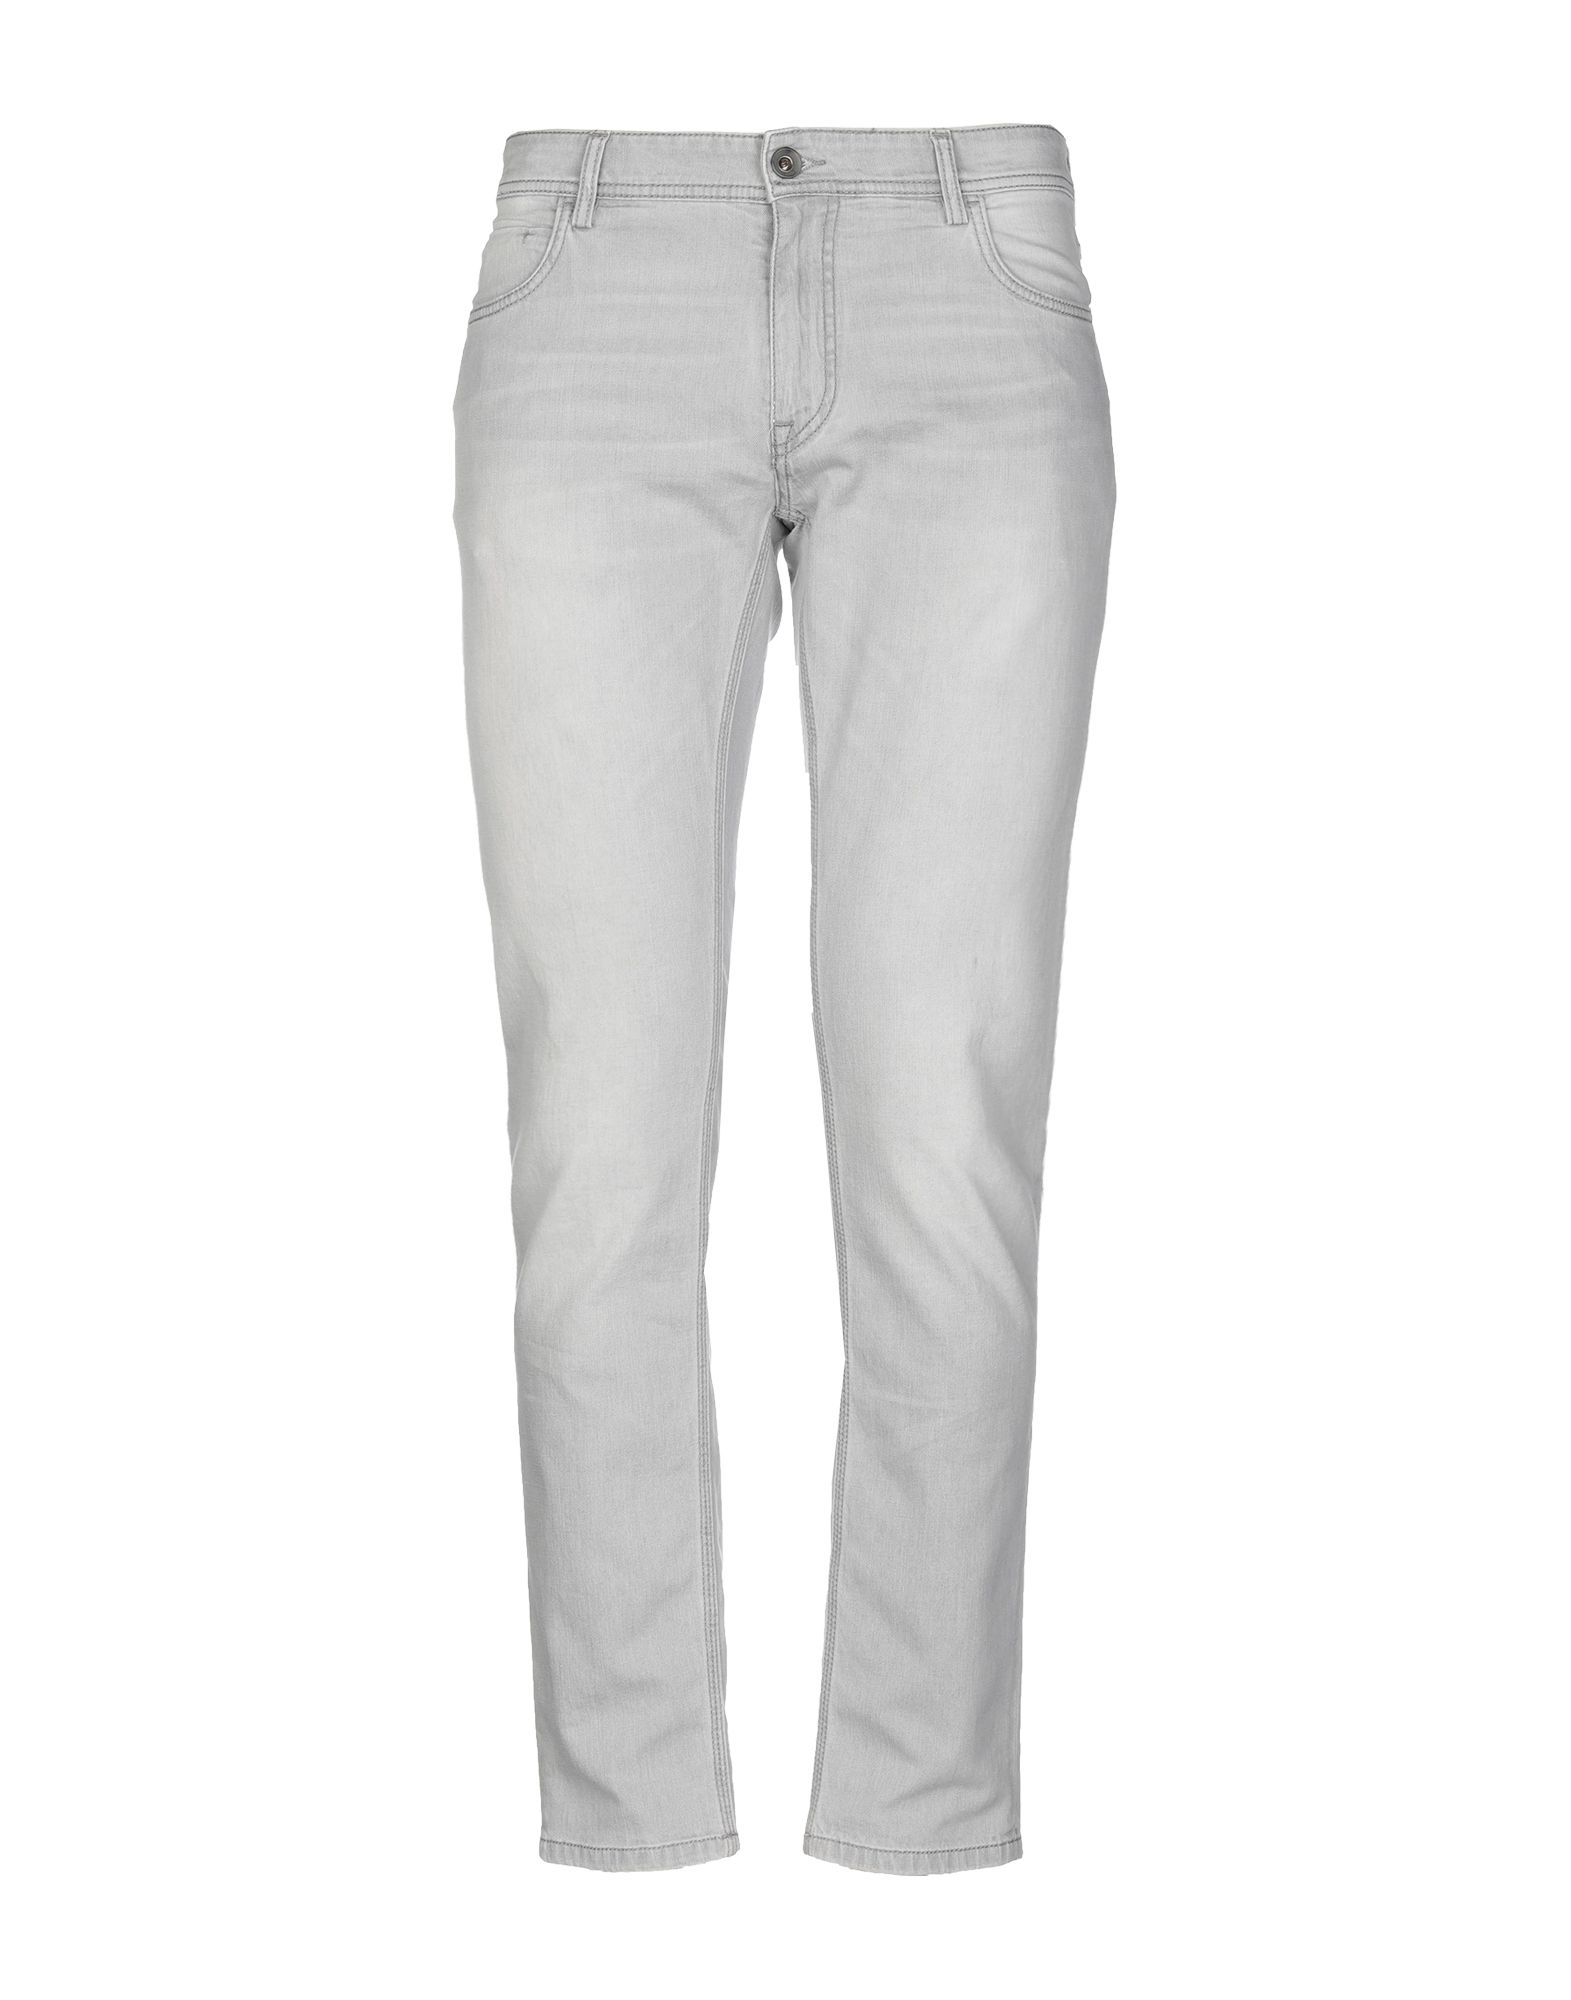 Pantaloni Jeans Paolo Pecora uomo - 42700995IS 42700995IS 42700995IS ea3